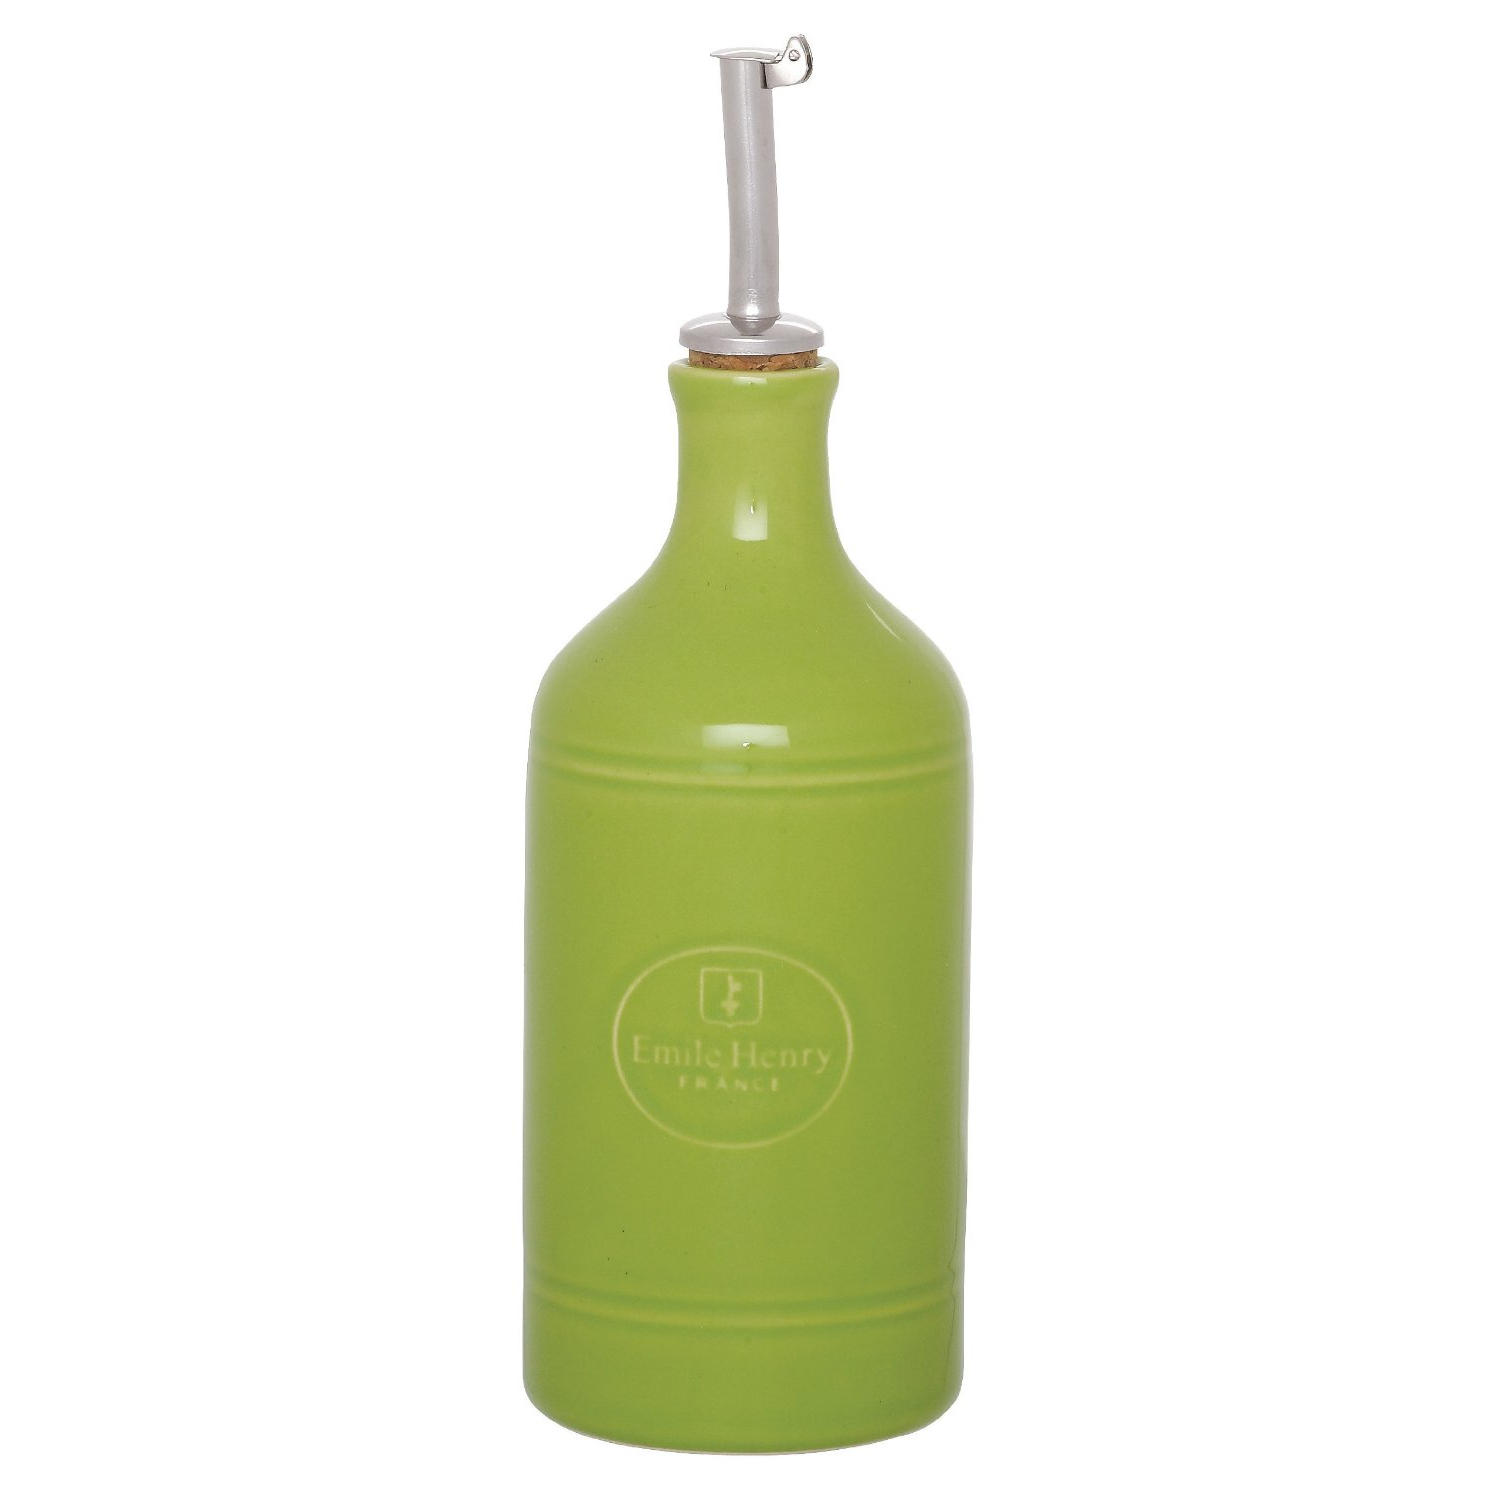 Emile Henry Green Apple Ceramic Oil Cruet with Stainless Steel Spout, 14 Ounce